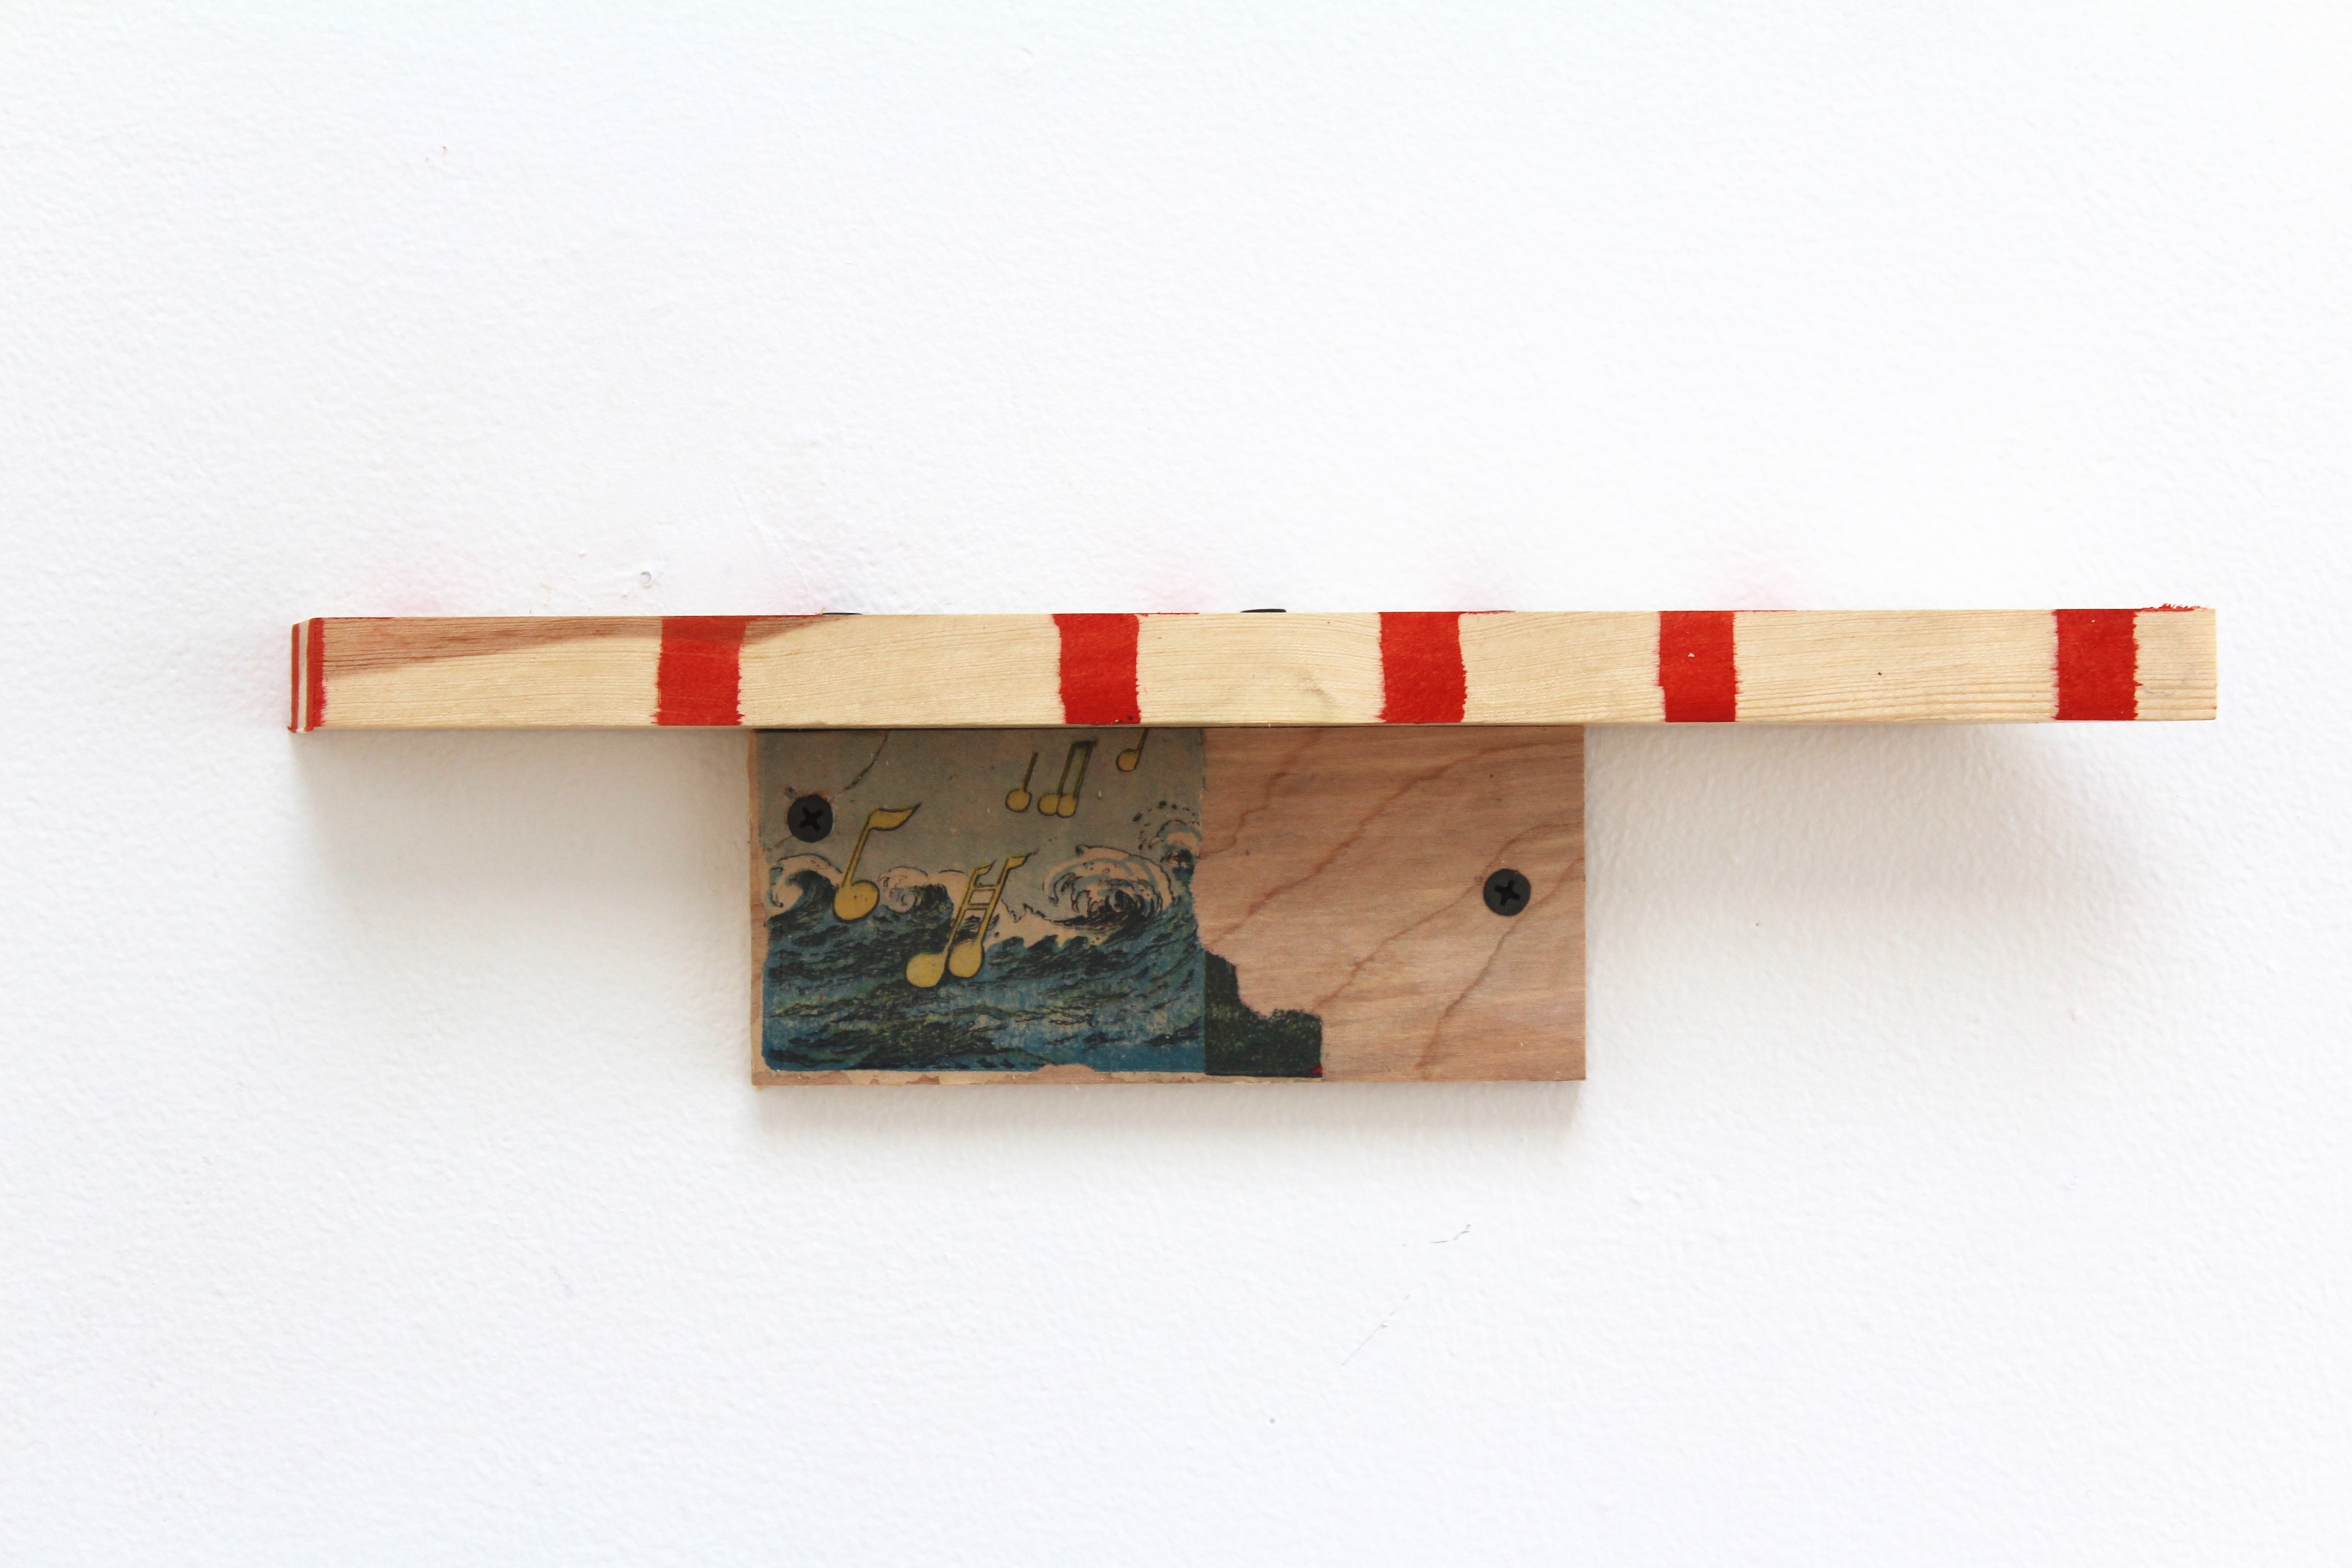 Kevin McNamee-Tweed.<em> Uptimed Shelf</em>, 2019. Ink and newsprint on wood, 3 1/4 x 13 1/2 x 1 3/4 inches (8.3 x 34.3 x 4.4 cm)